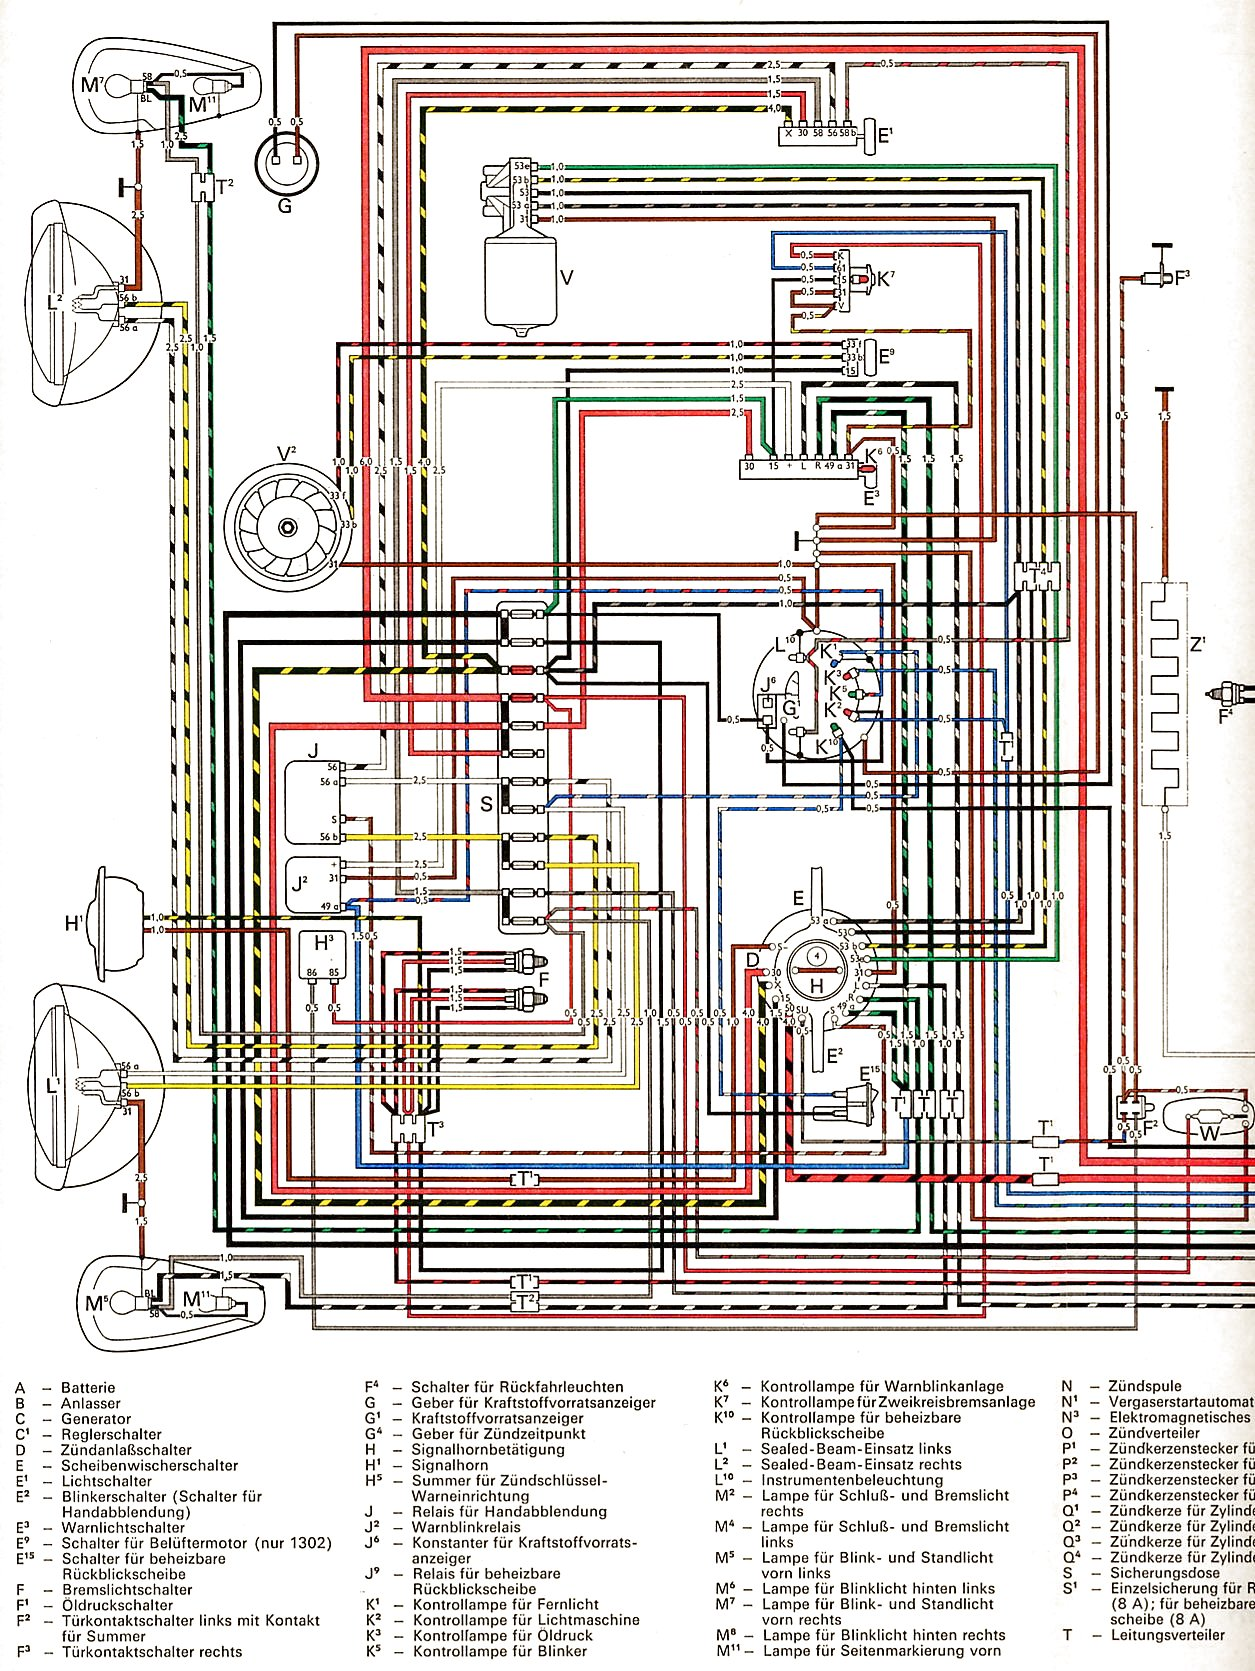 1970 VW Beetle Wiring Diagram besides Viewtopic also Viewtopic together with 72 Vw Beetle Wiring Diagram likewise Front Engine Hot Rod Vw Bug. on thesamba type 1 wiring diagrams